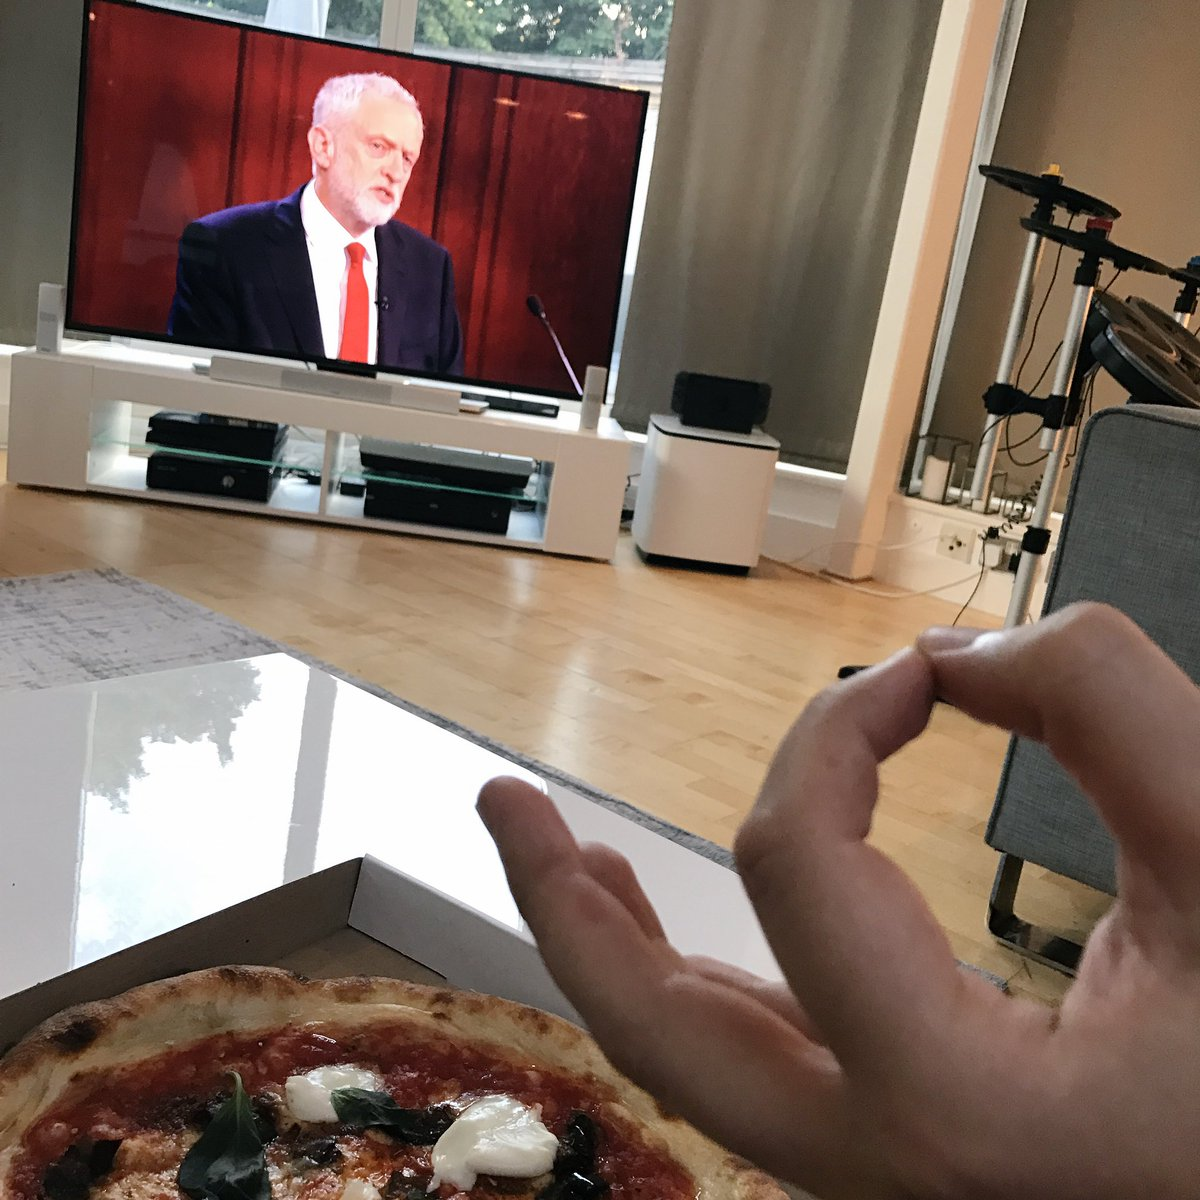 politics and pizza two personal passions